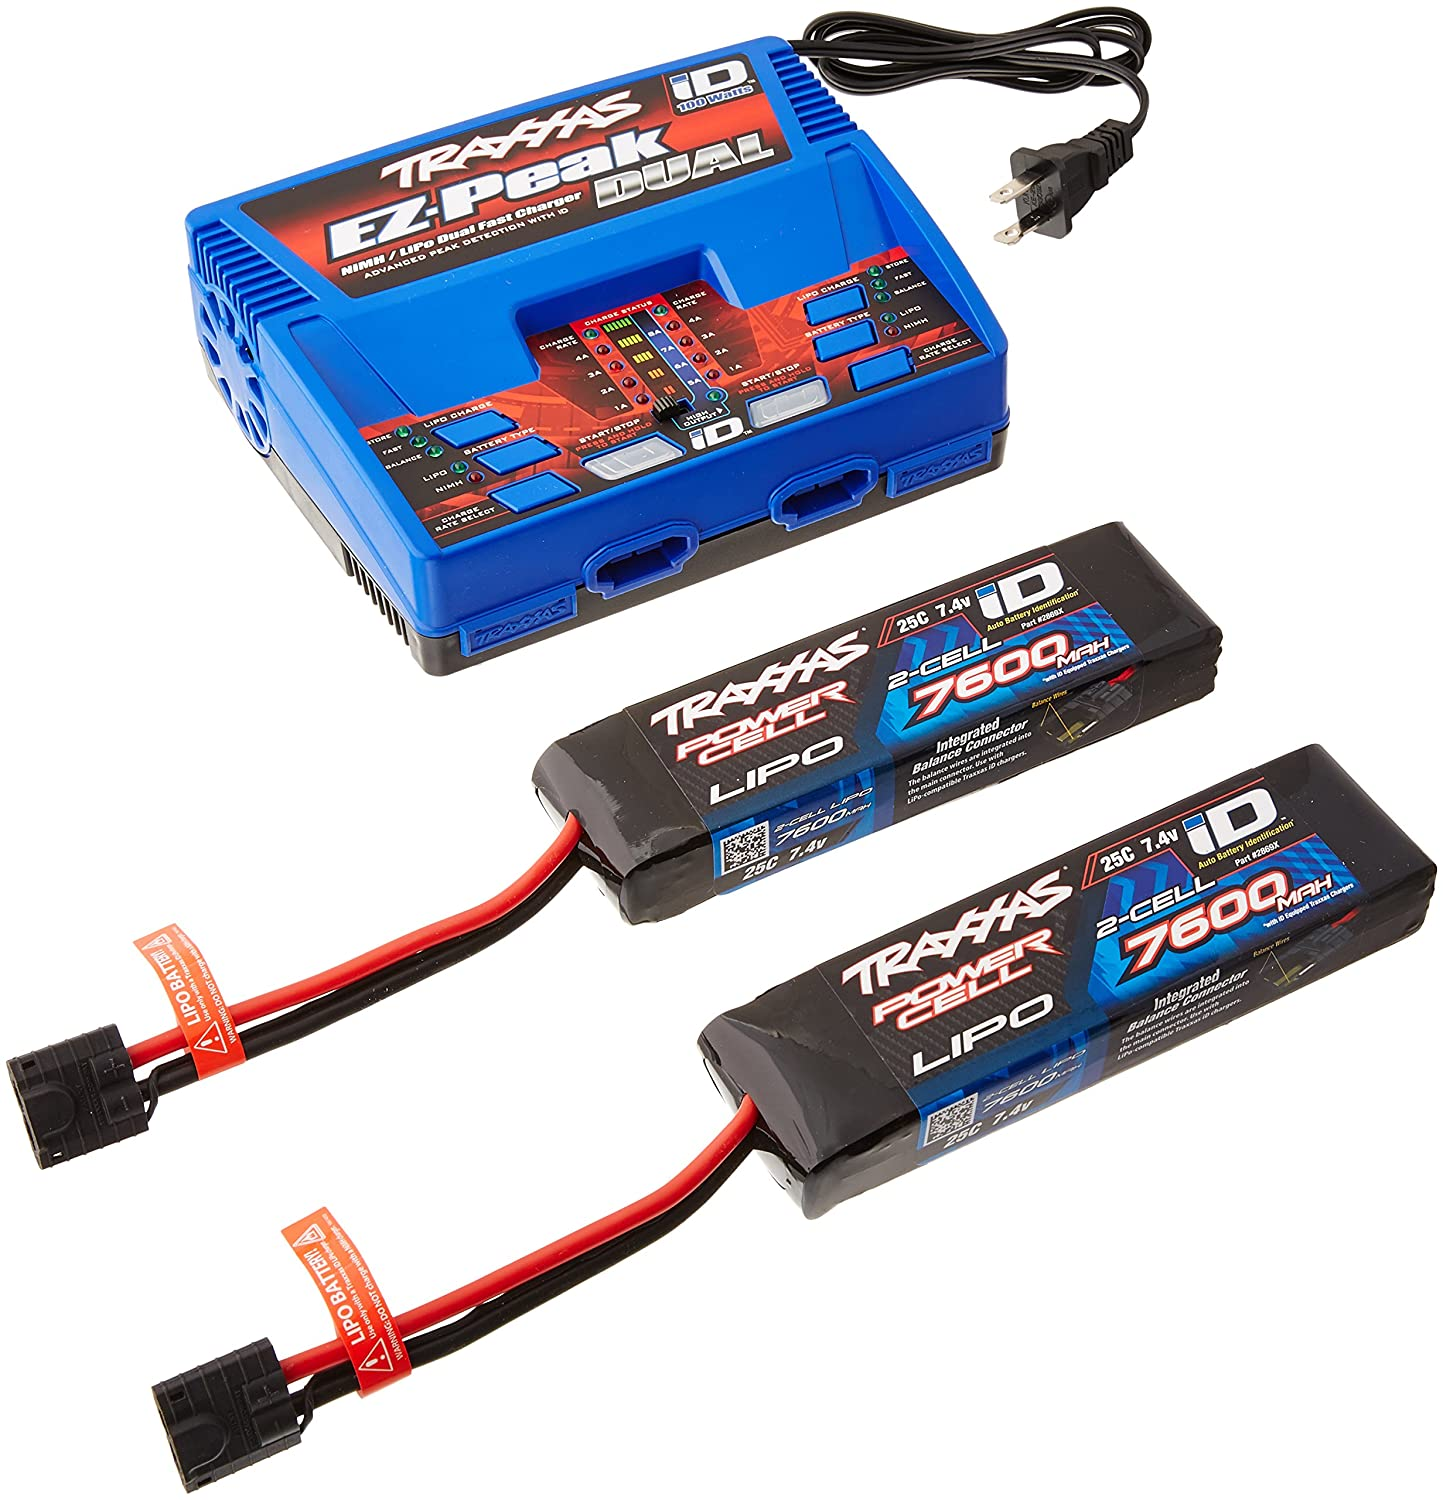 Amazon Traxxas 2991 LiPo Battery and Charger pleter Pack Toys & Games